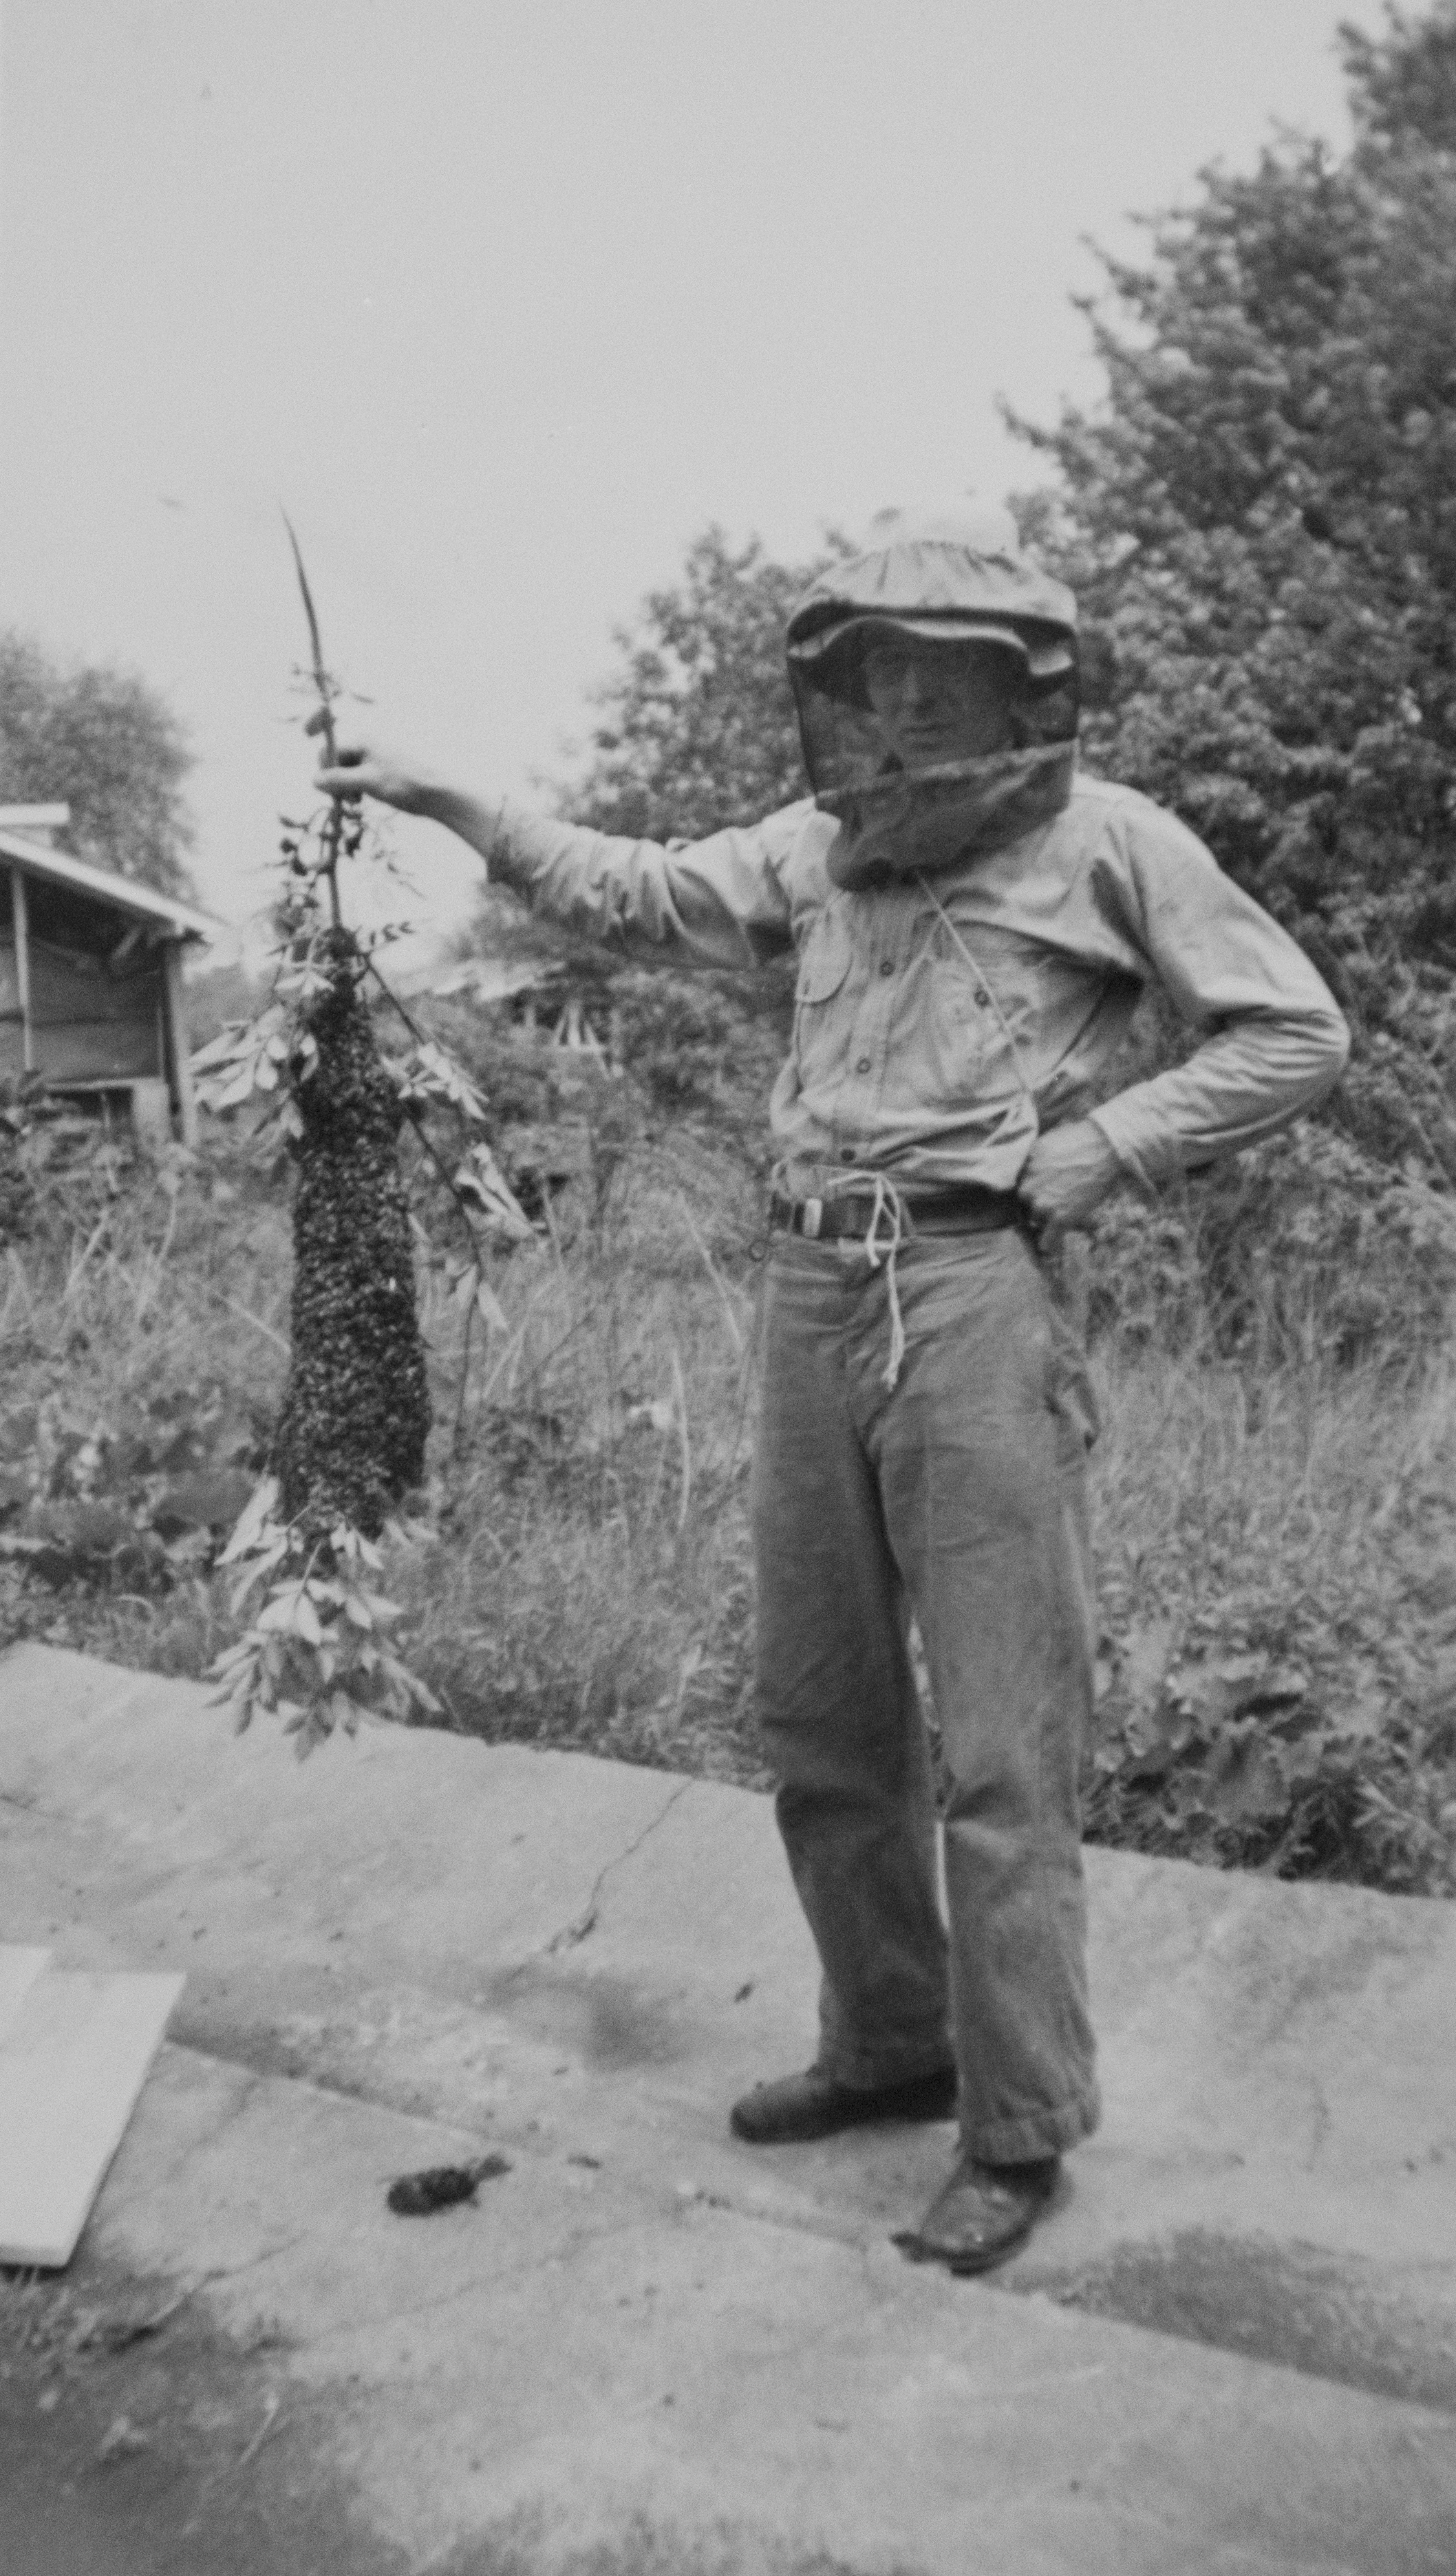 George Sr., wearing his bee veil and other beekeeping equipment,stands with a colony of bees on a tree branch. (Archive)